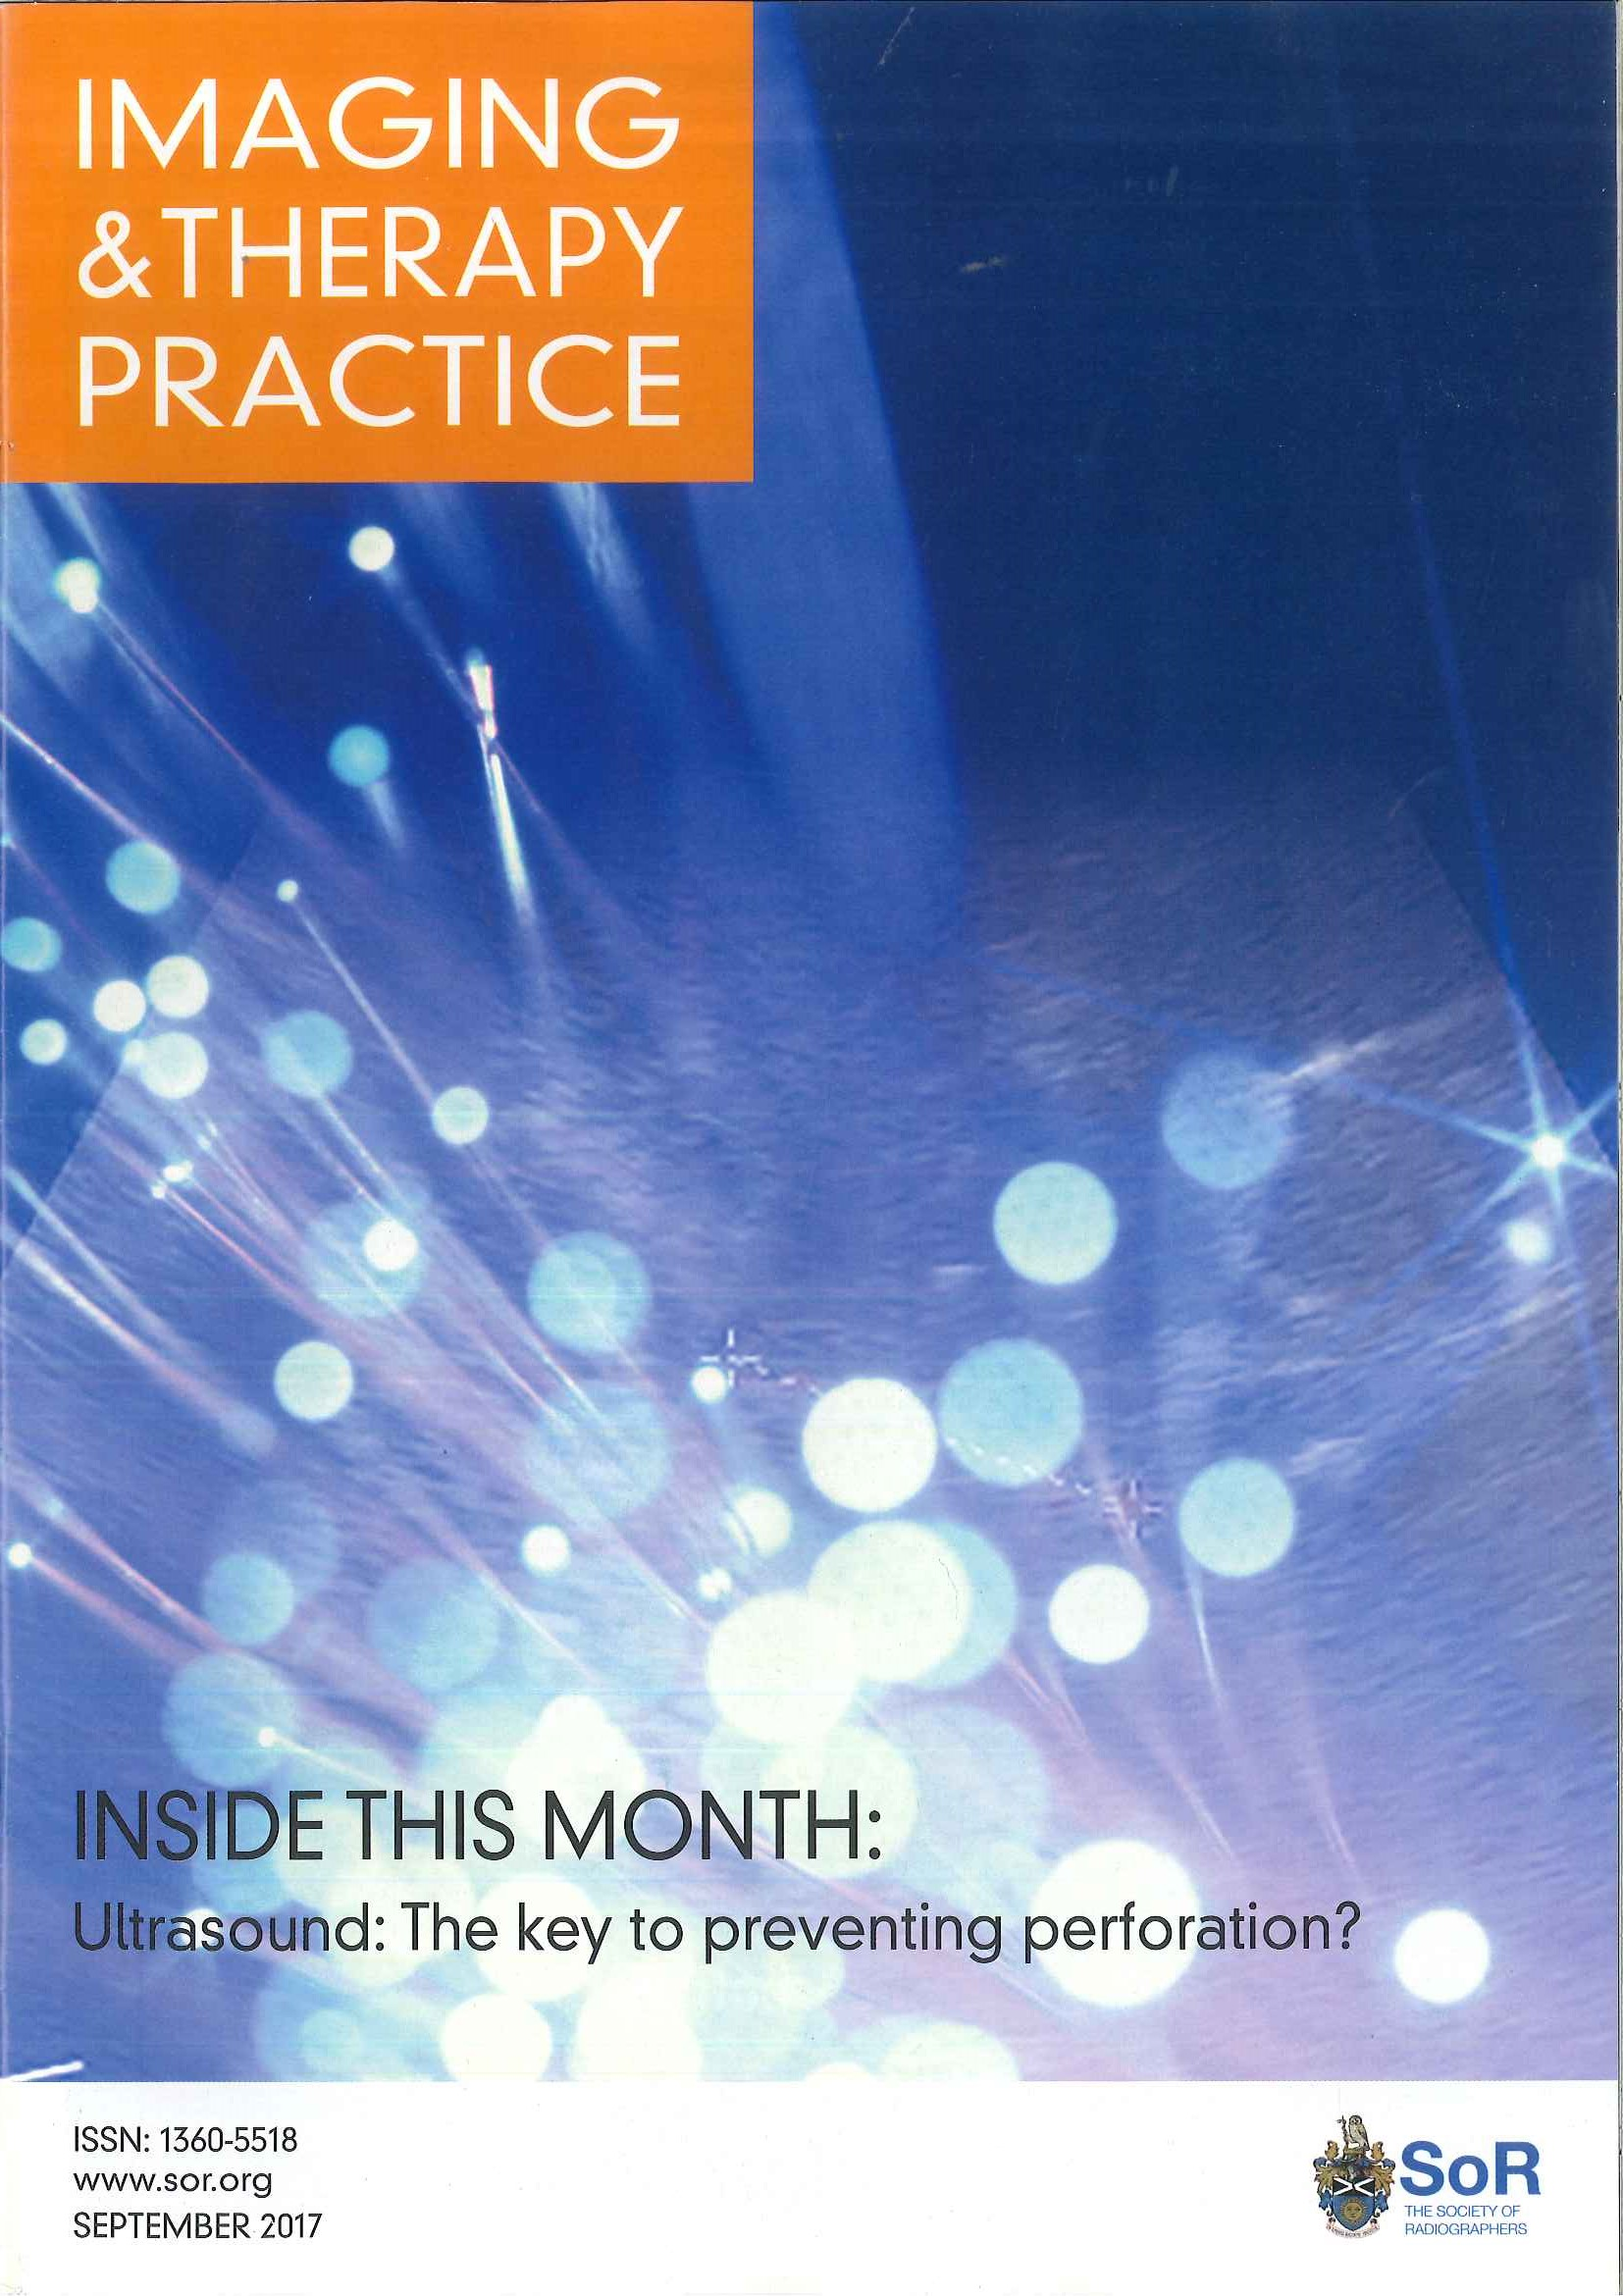 Imaging & therapy practice